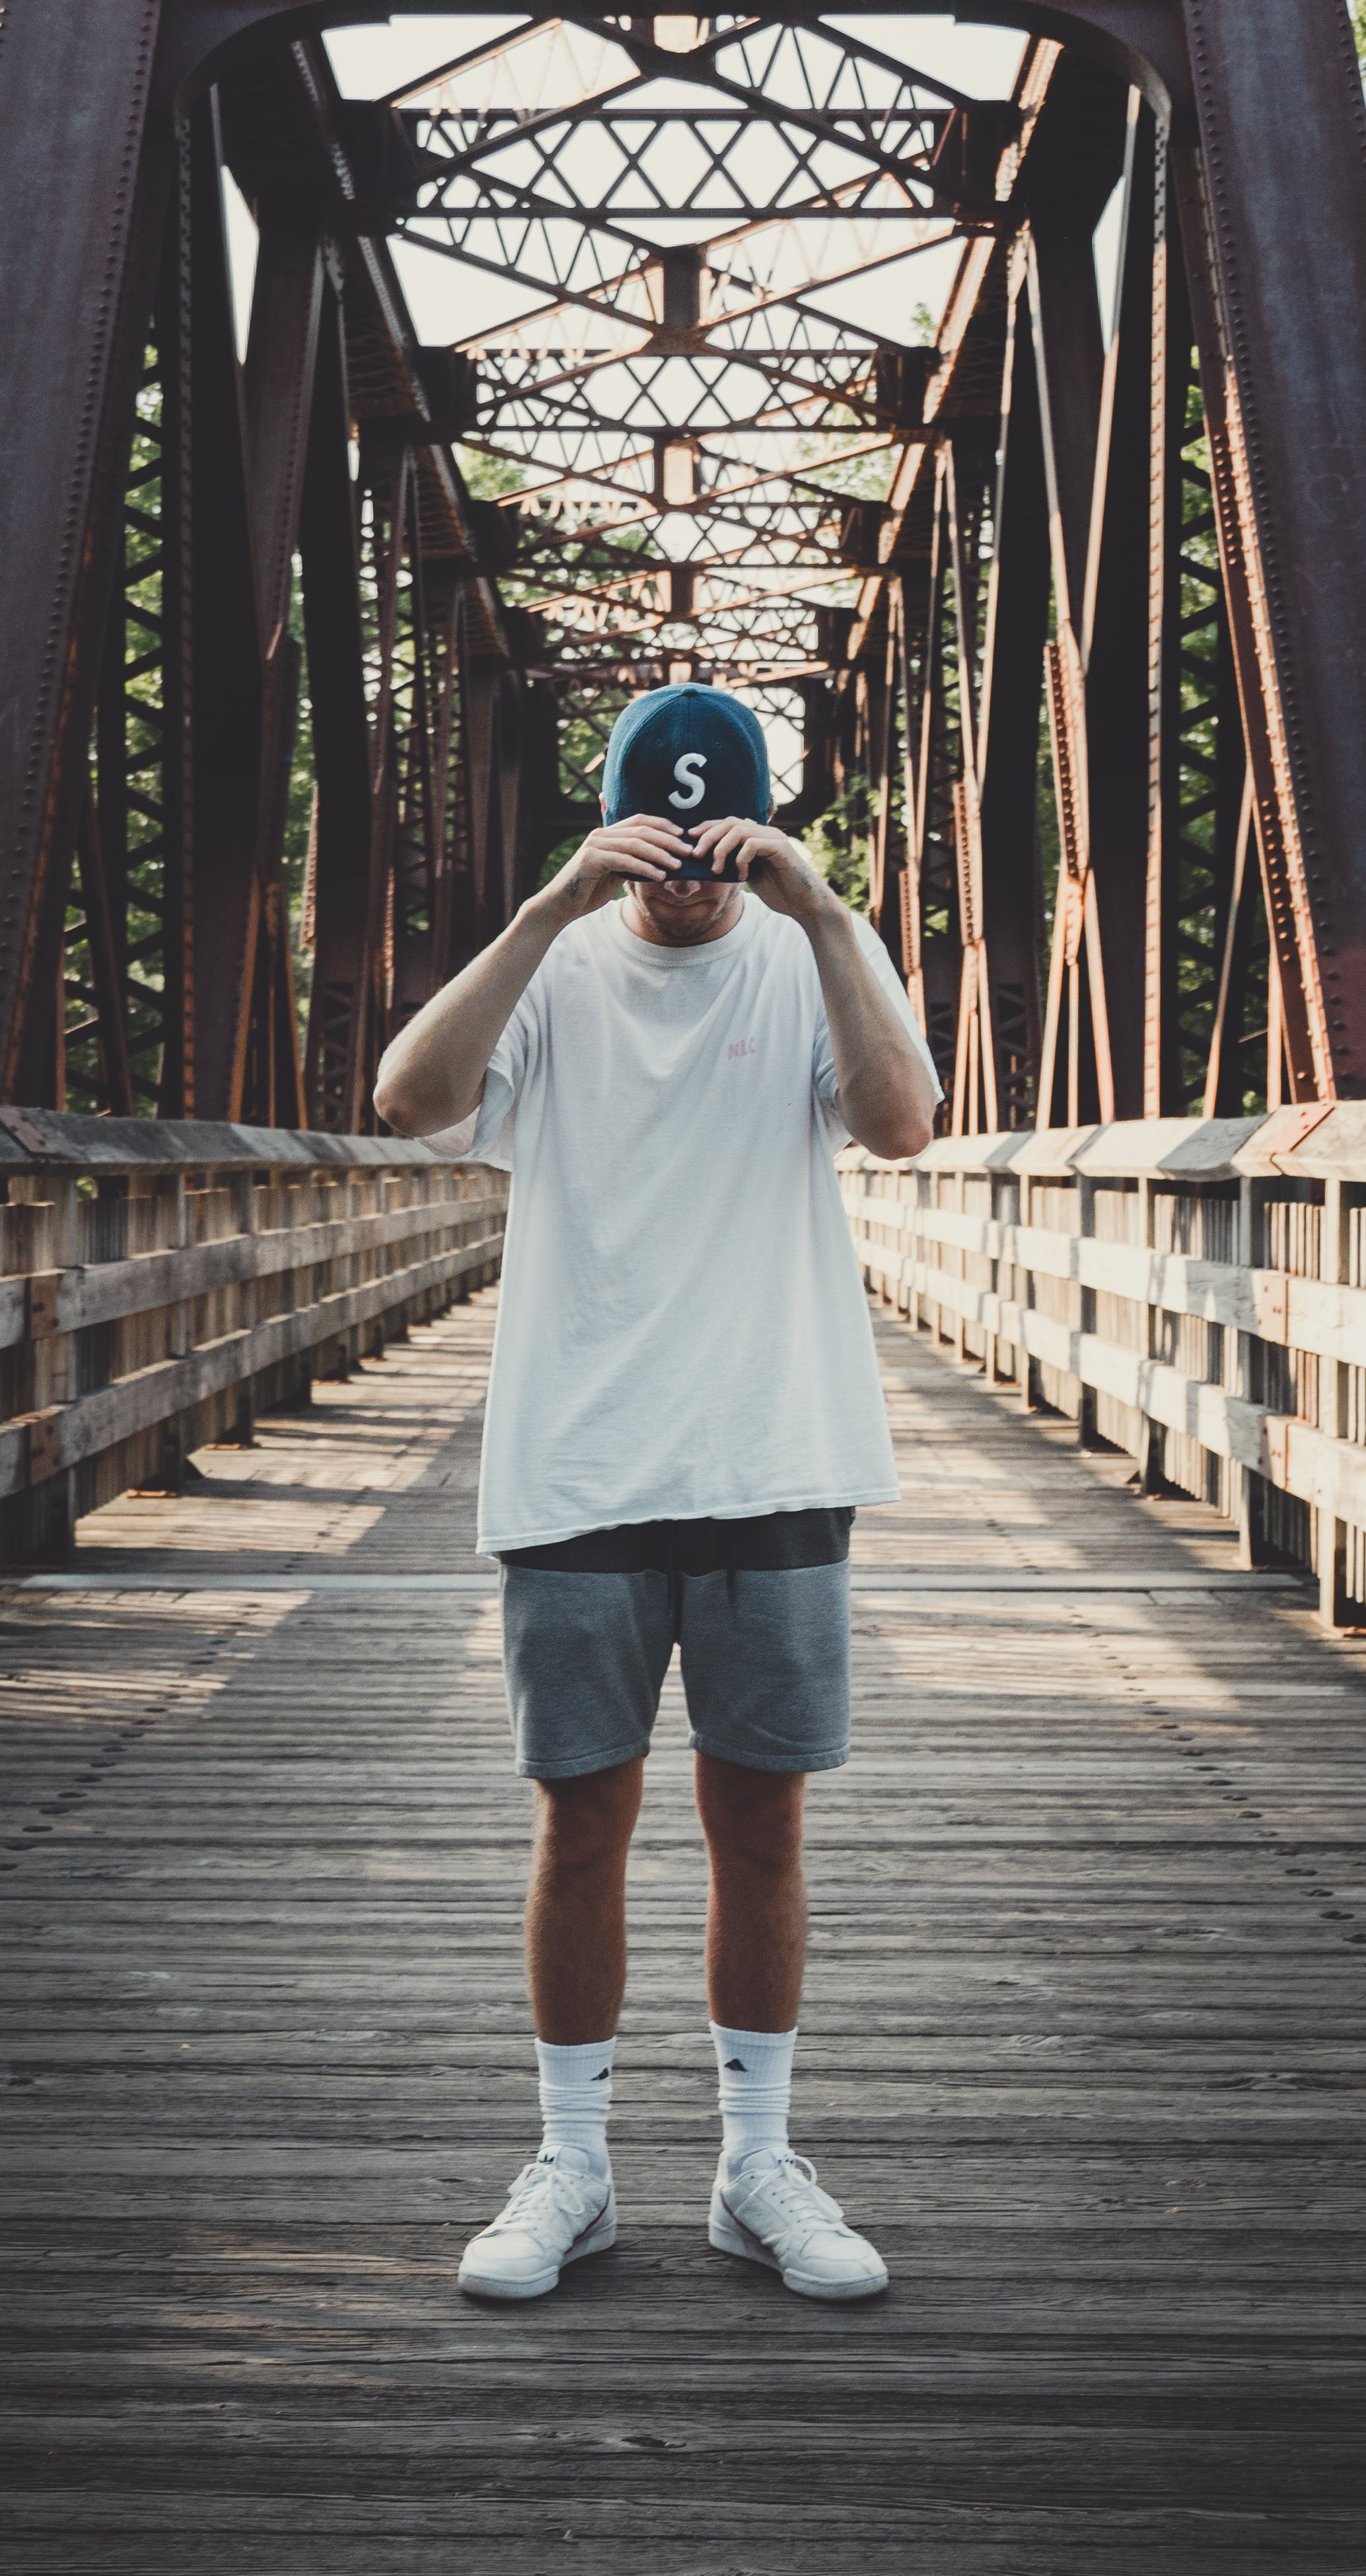 Man in White Crew-neck T-shirt Standing on Bridge